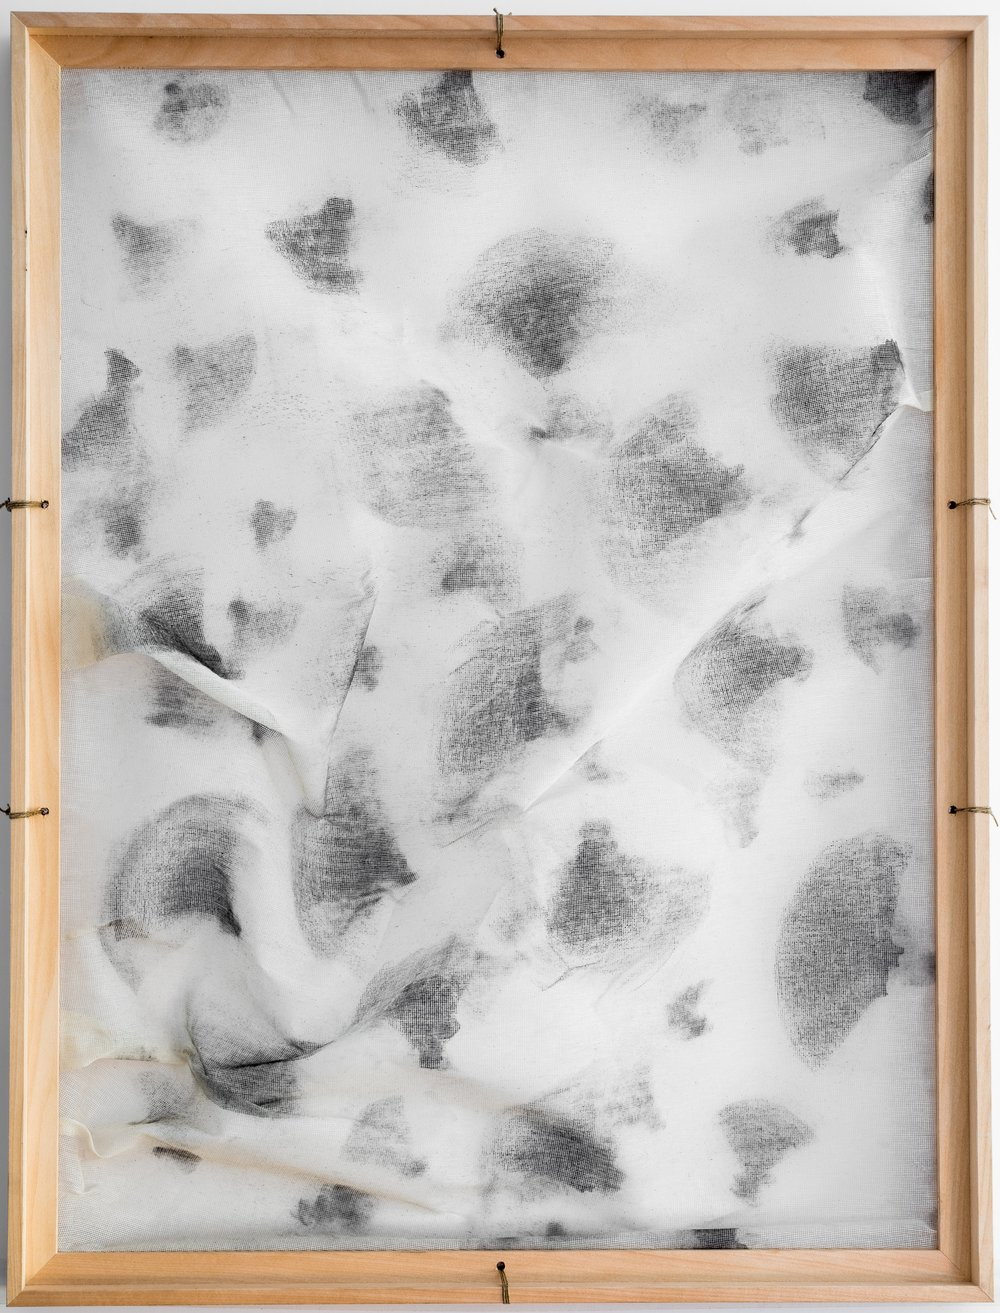 Moment Between Thoughts / Part V   (2016) Chalk on gauze, wooden frame structure. 84 x 64 cm (33 x 25 in.)